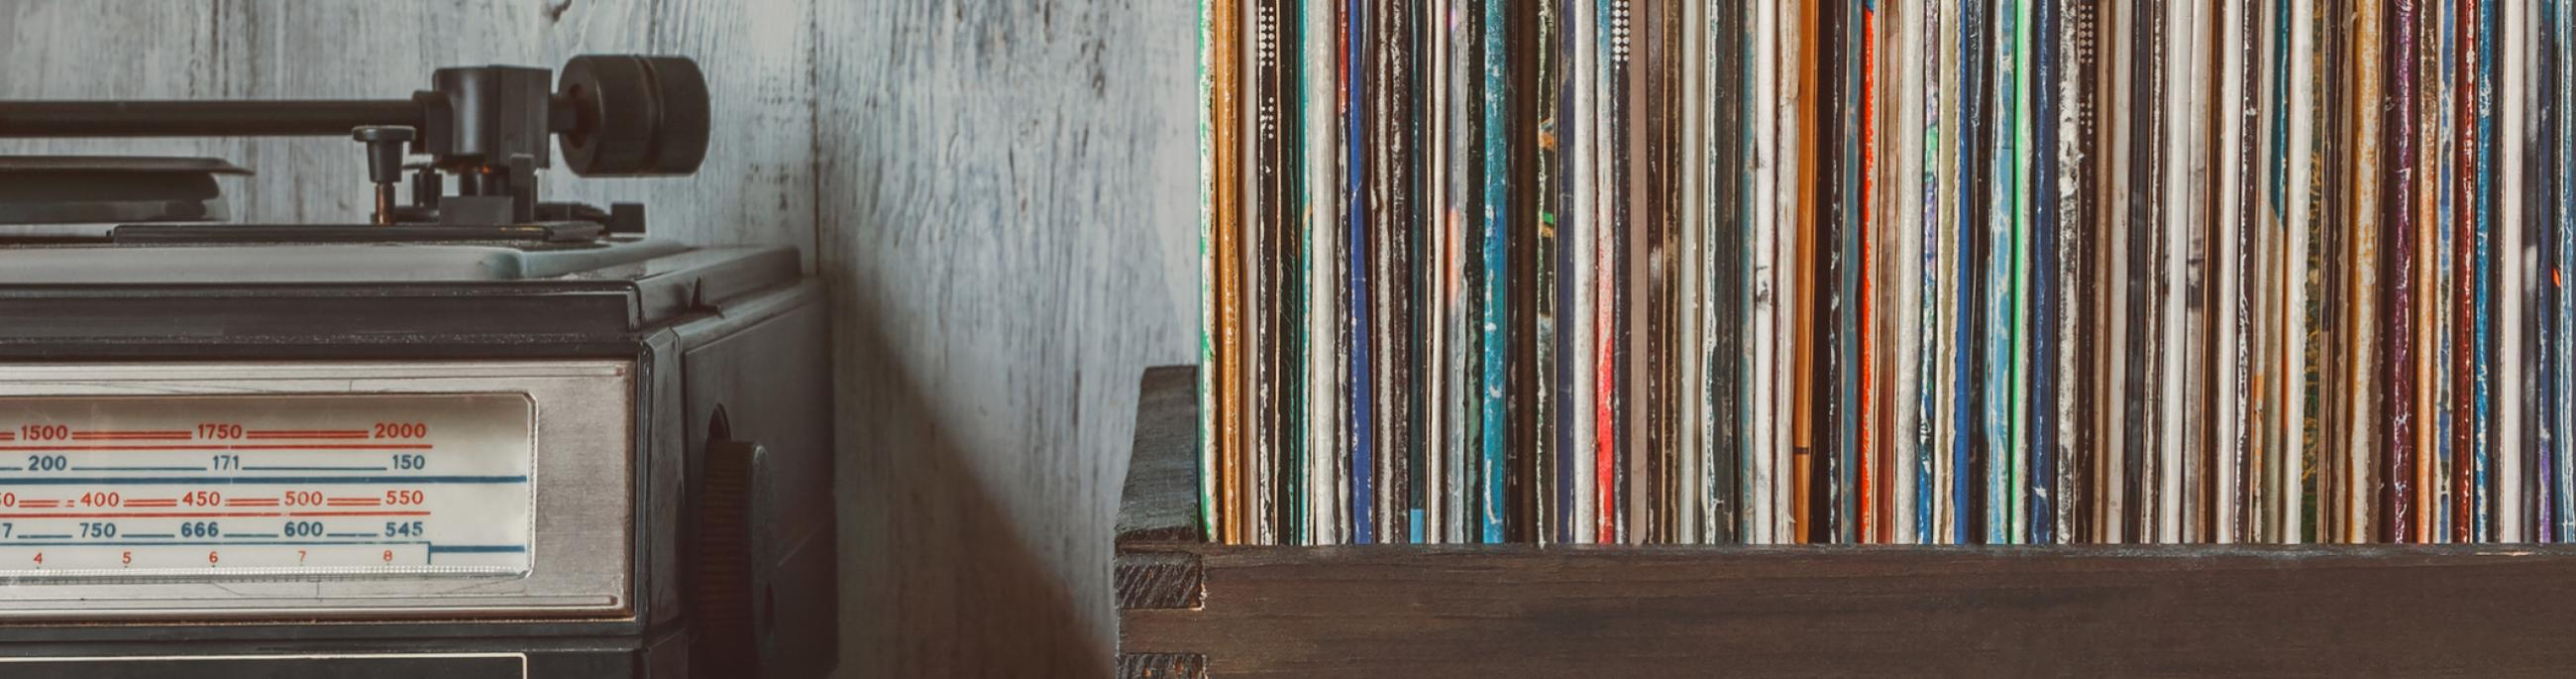 An old record player sits next to a box filled with vinyl albums